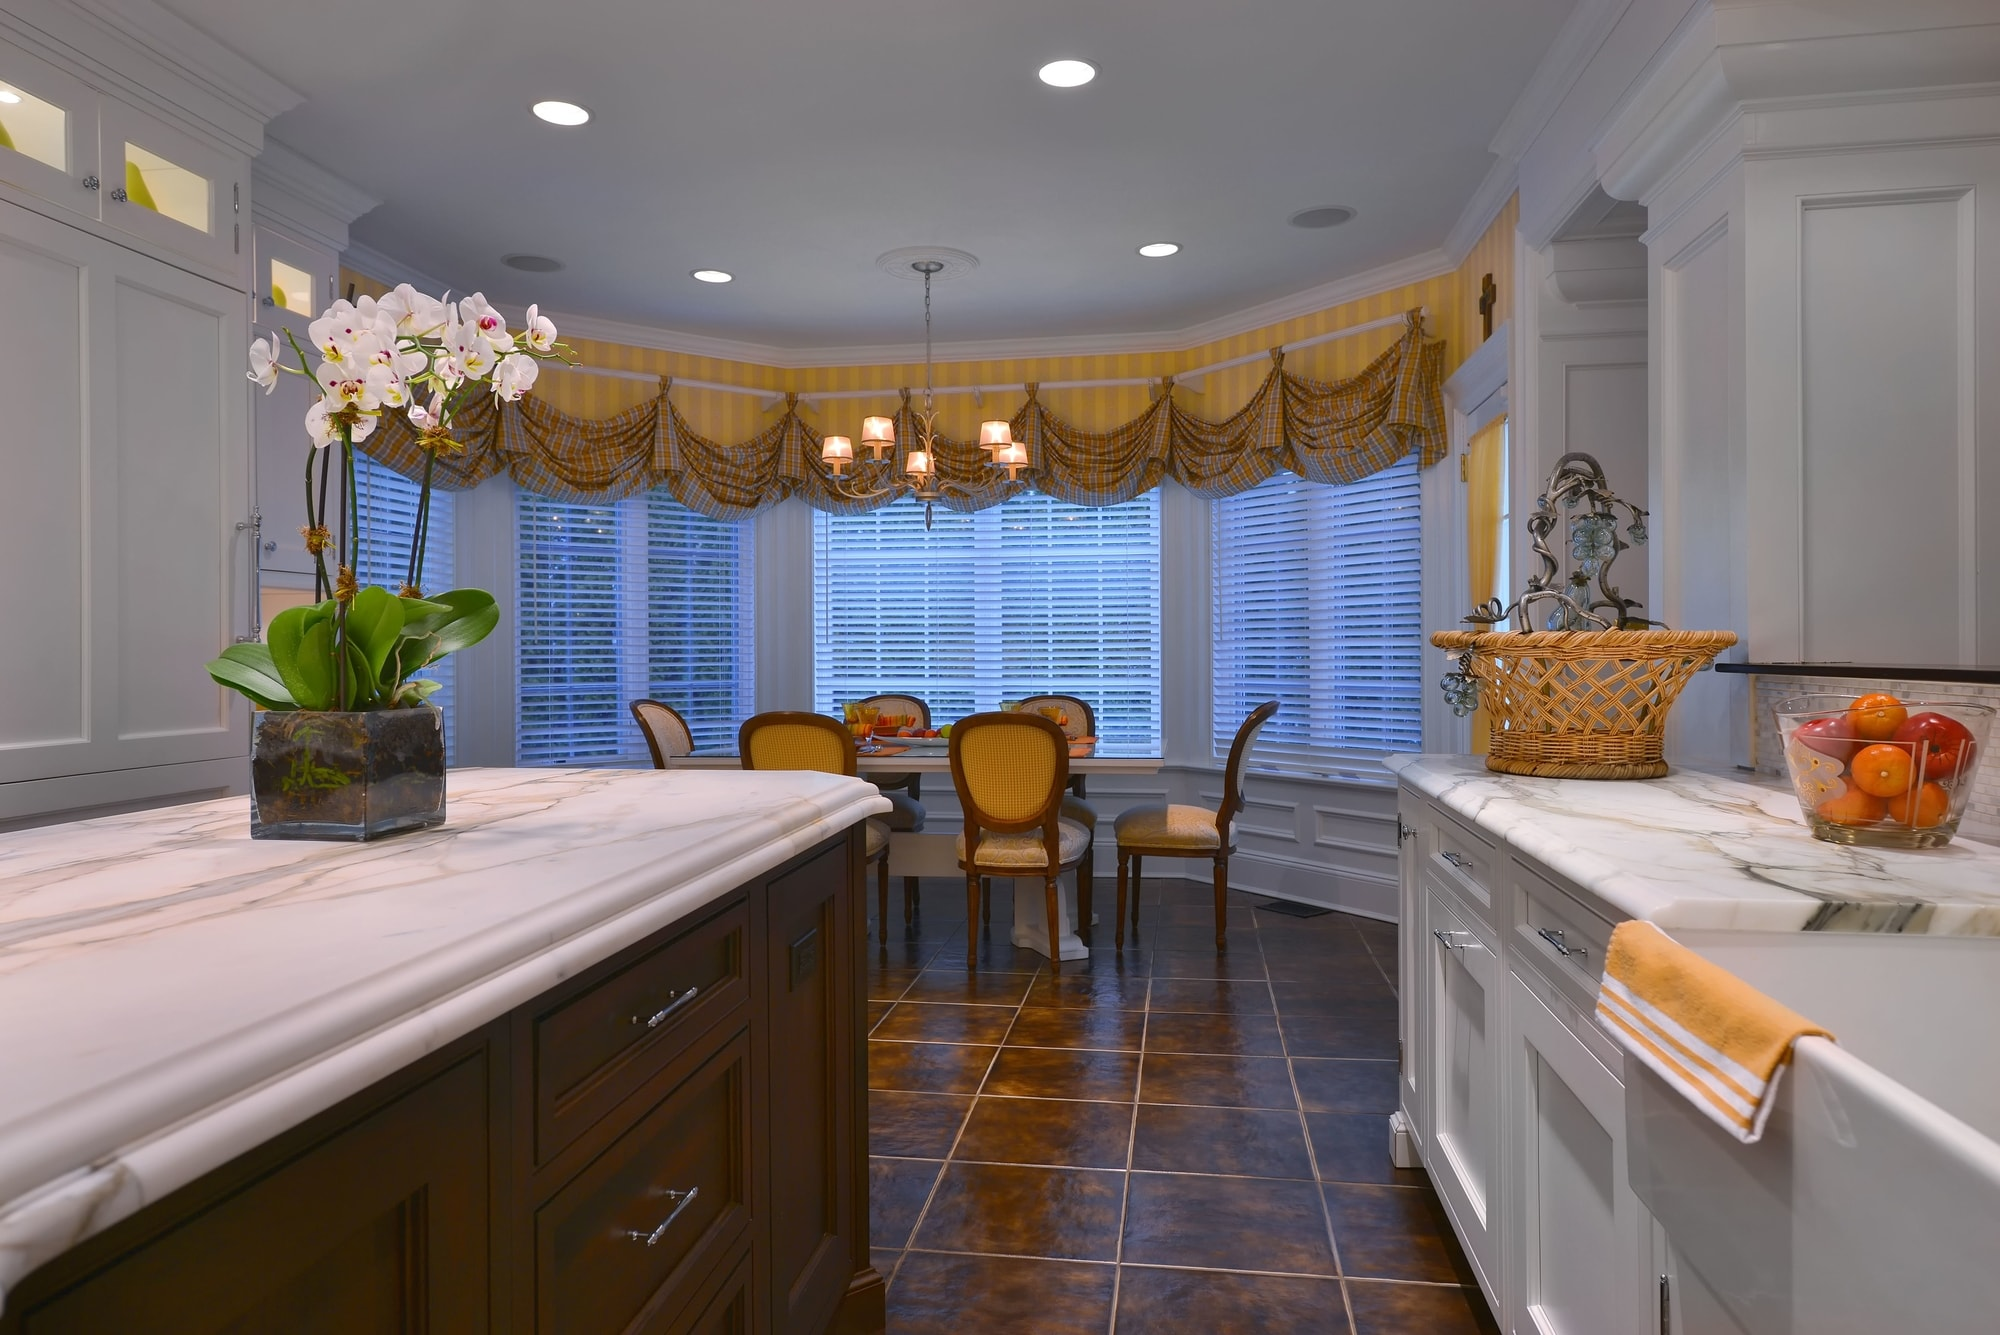 Transitional style kitchen with large windows and blinds